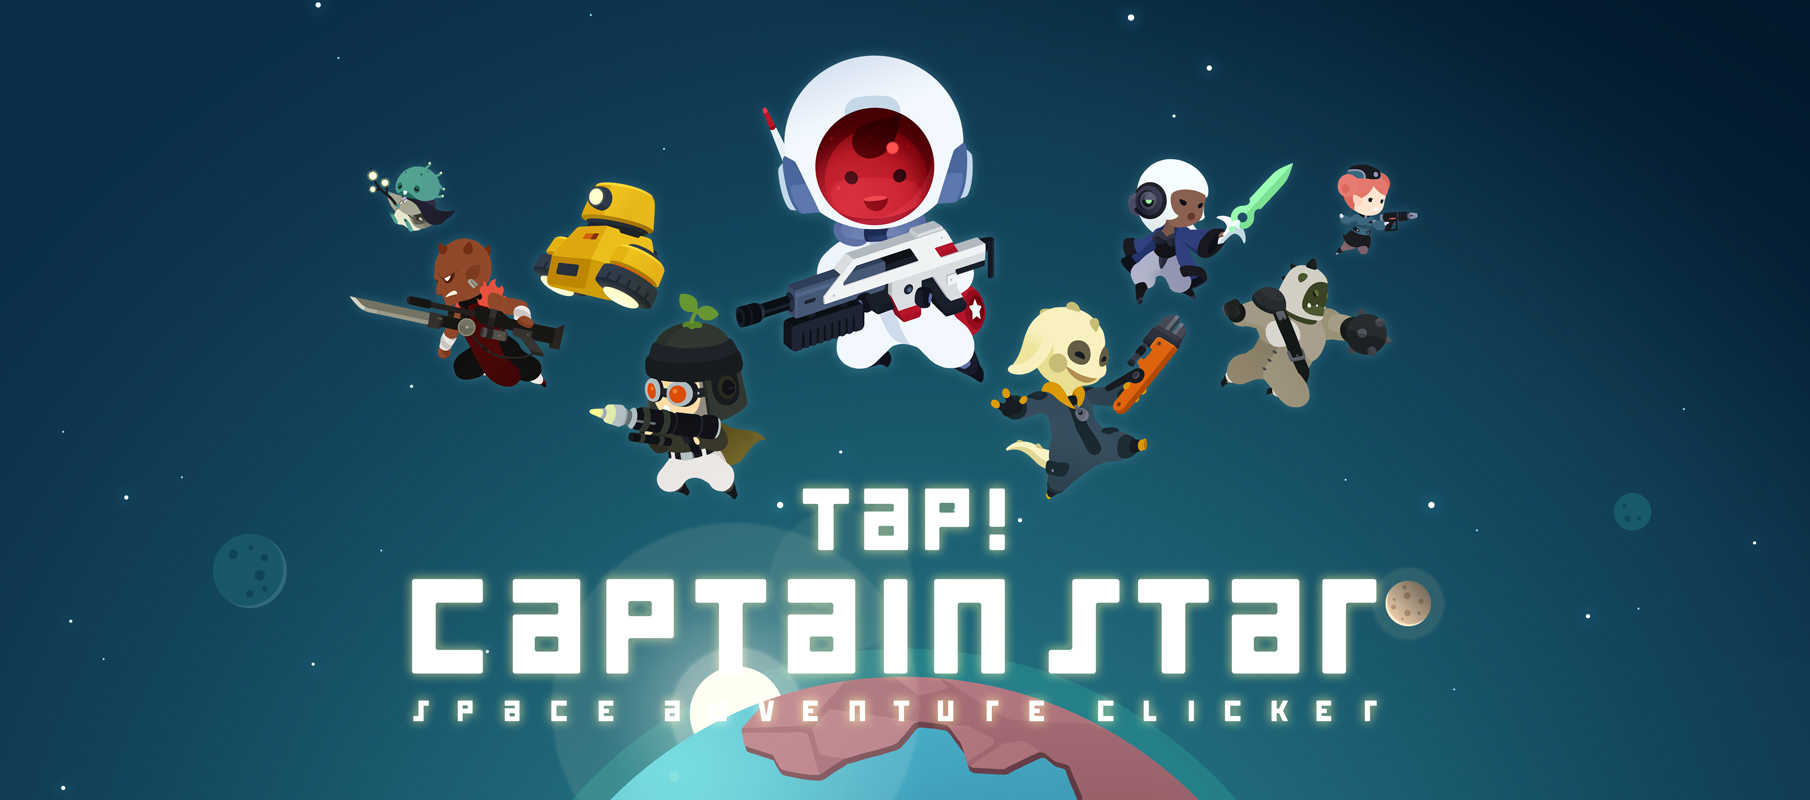 Tap! Captain Star